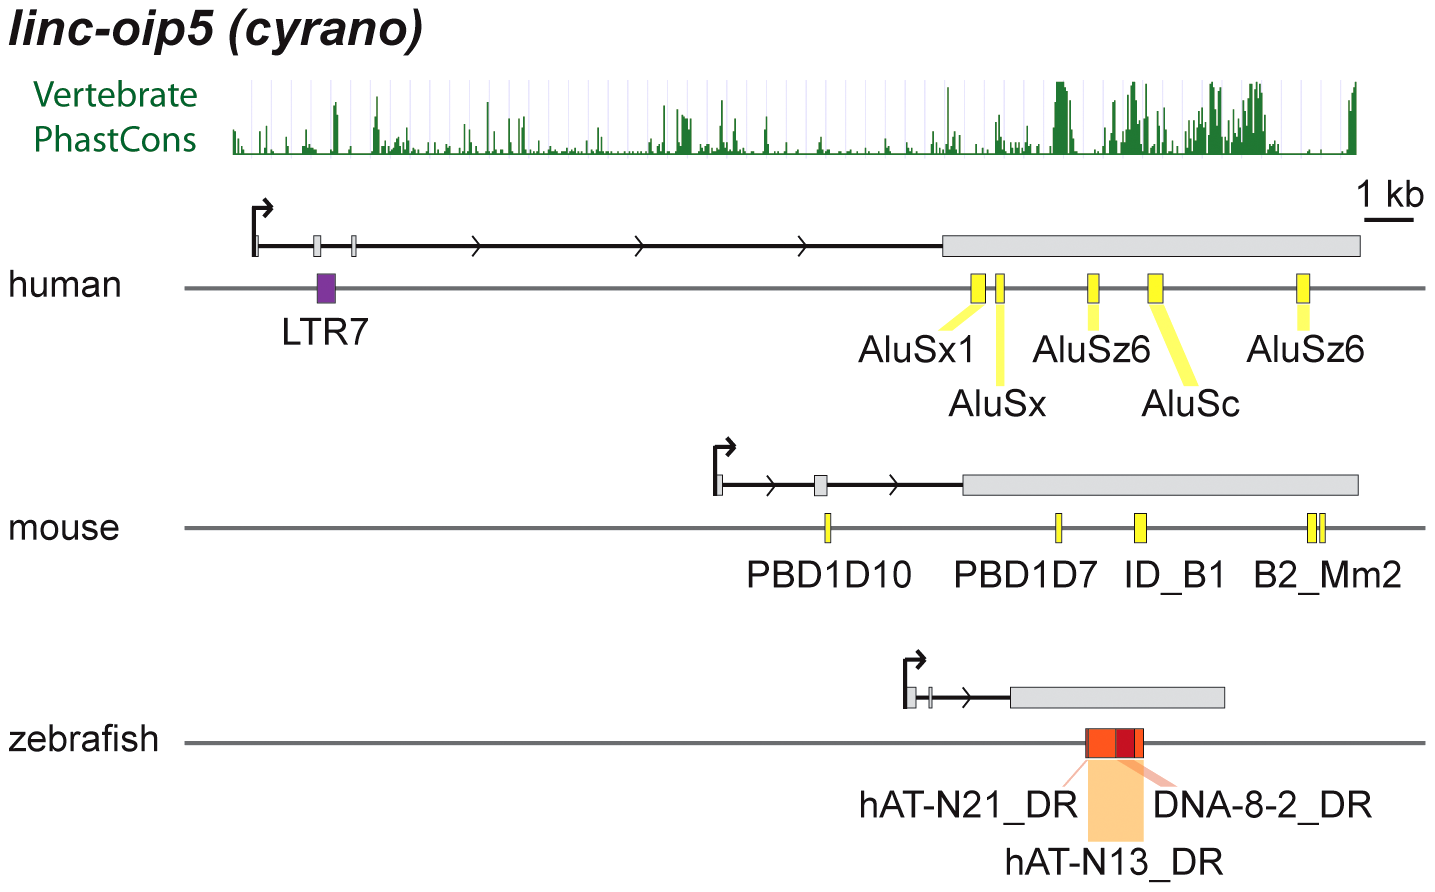 Lineage-specific TE insertions in <i>cyrano</i>.